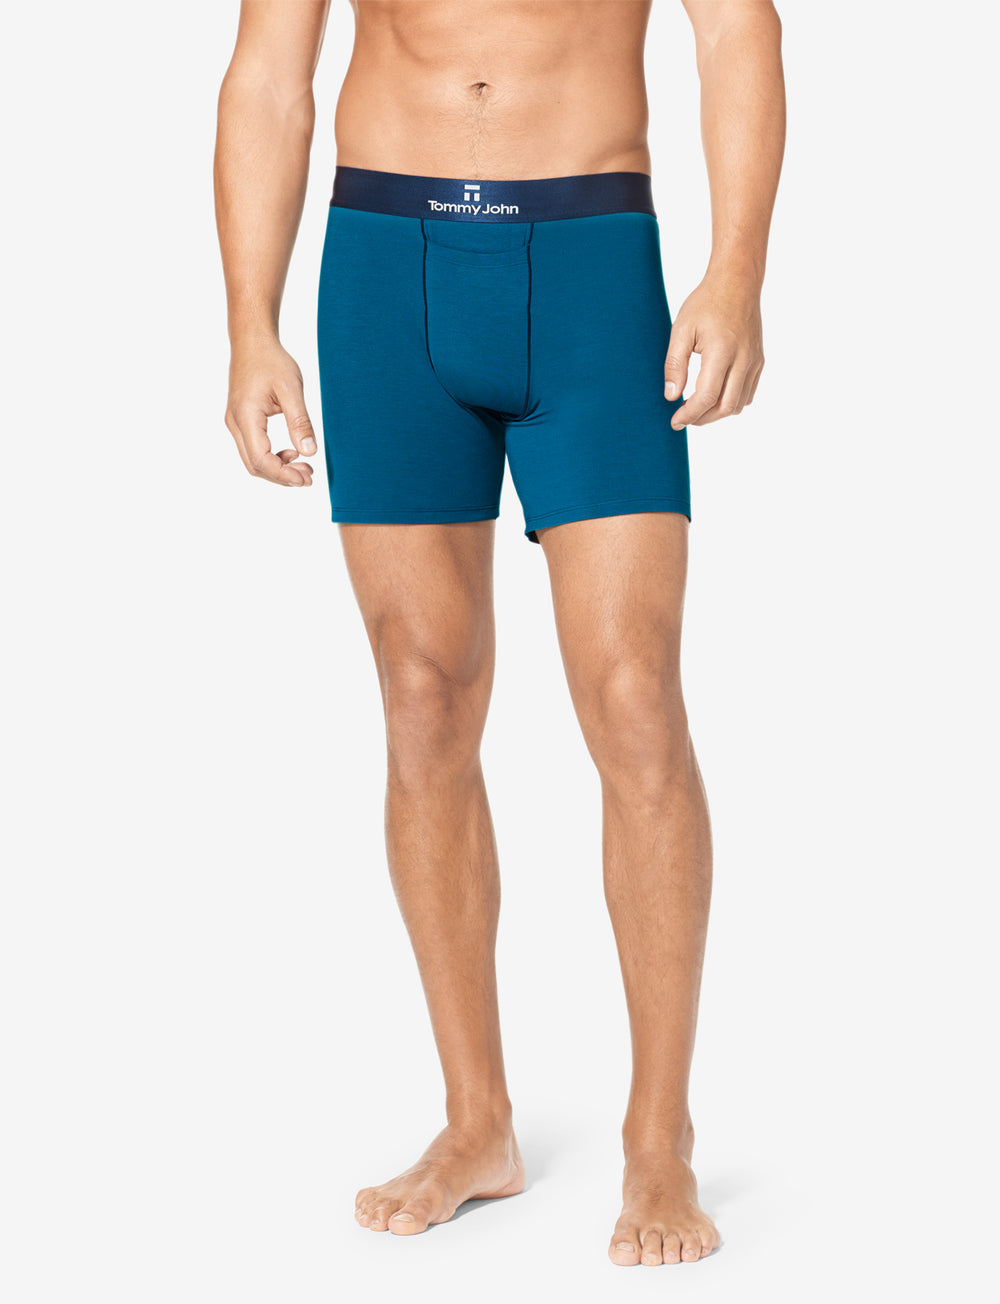 Second Skin Contrast Stitch Relaxed Fit Boxer Details Image